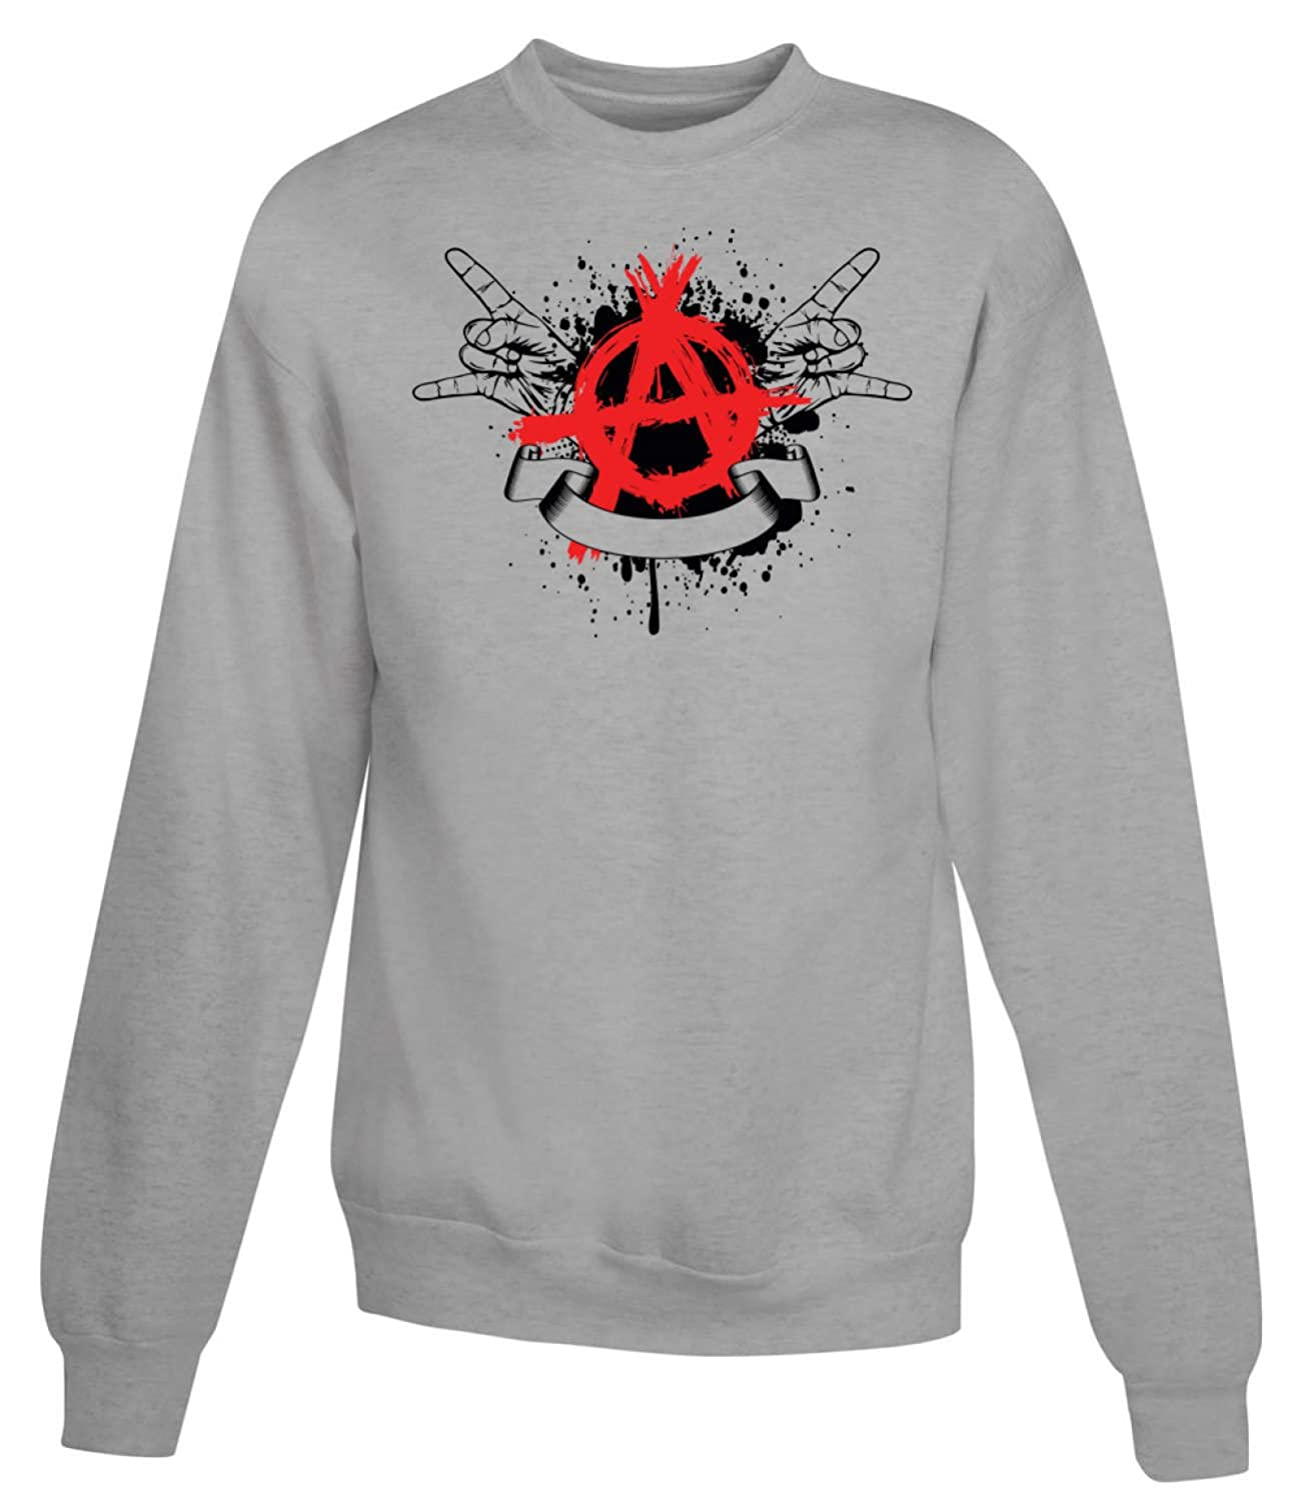 Red Symbol Anarchy With Hand Women's Unisex Sweatshirt